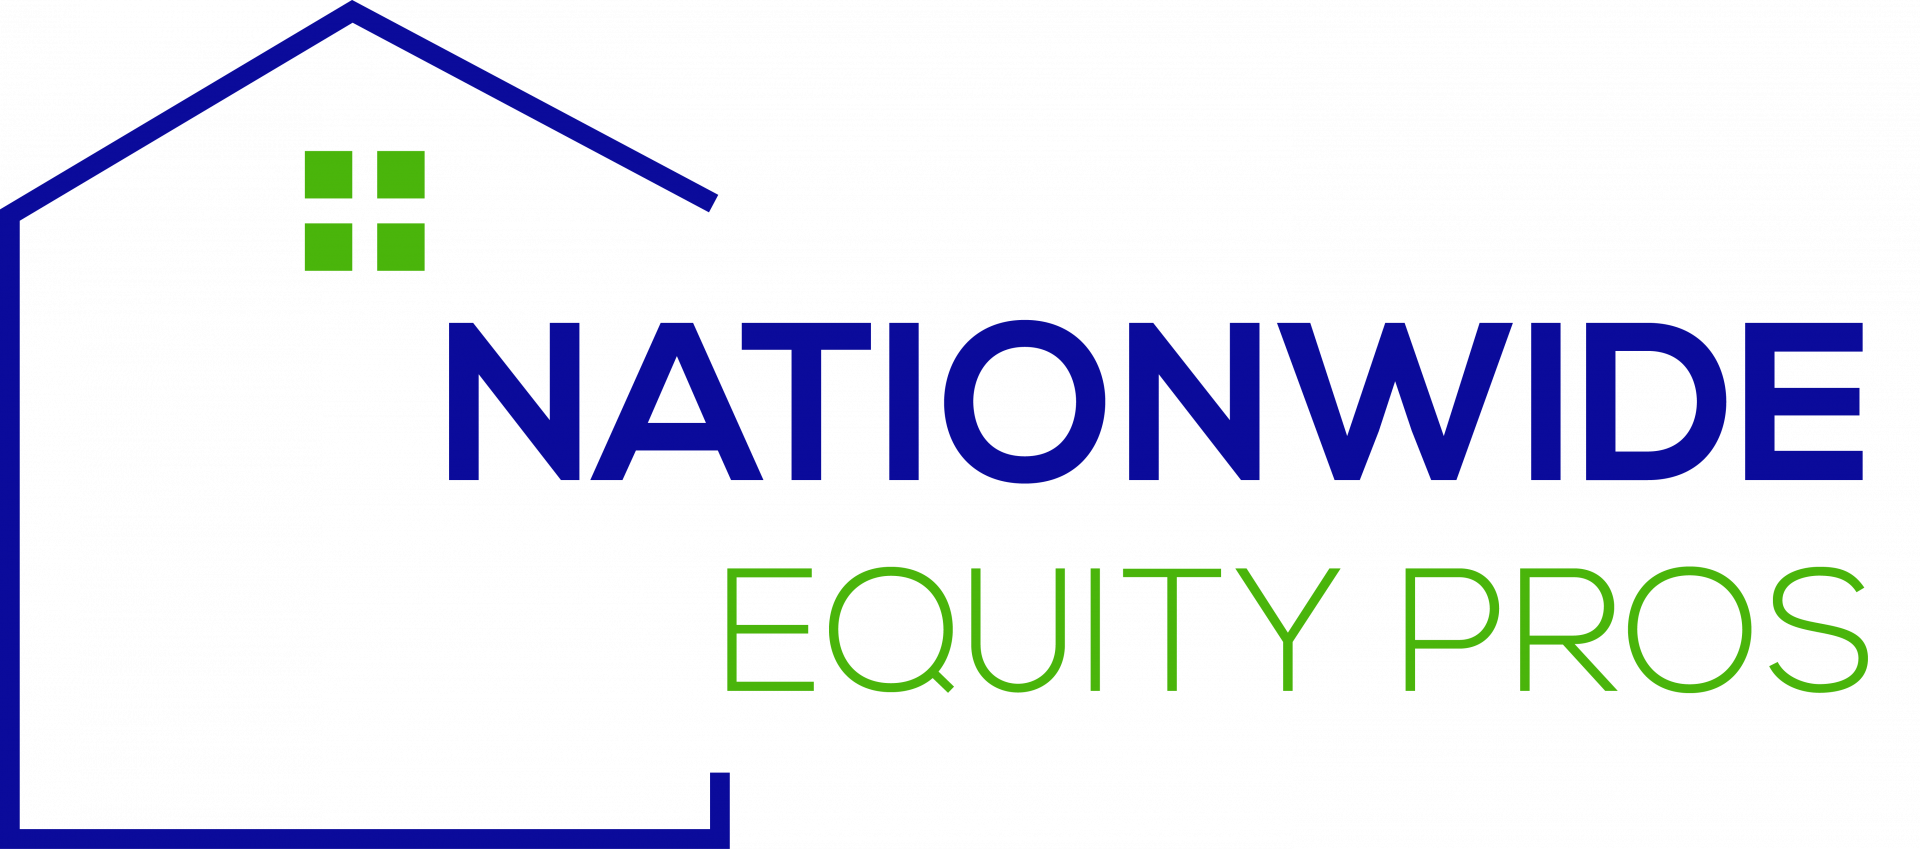 about nationwide equity pros south florida 305 770 6321